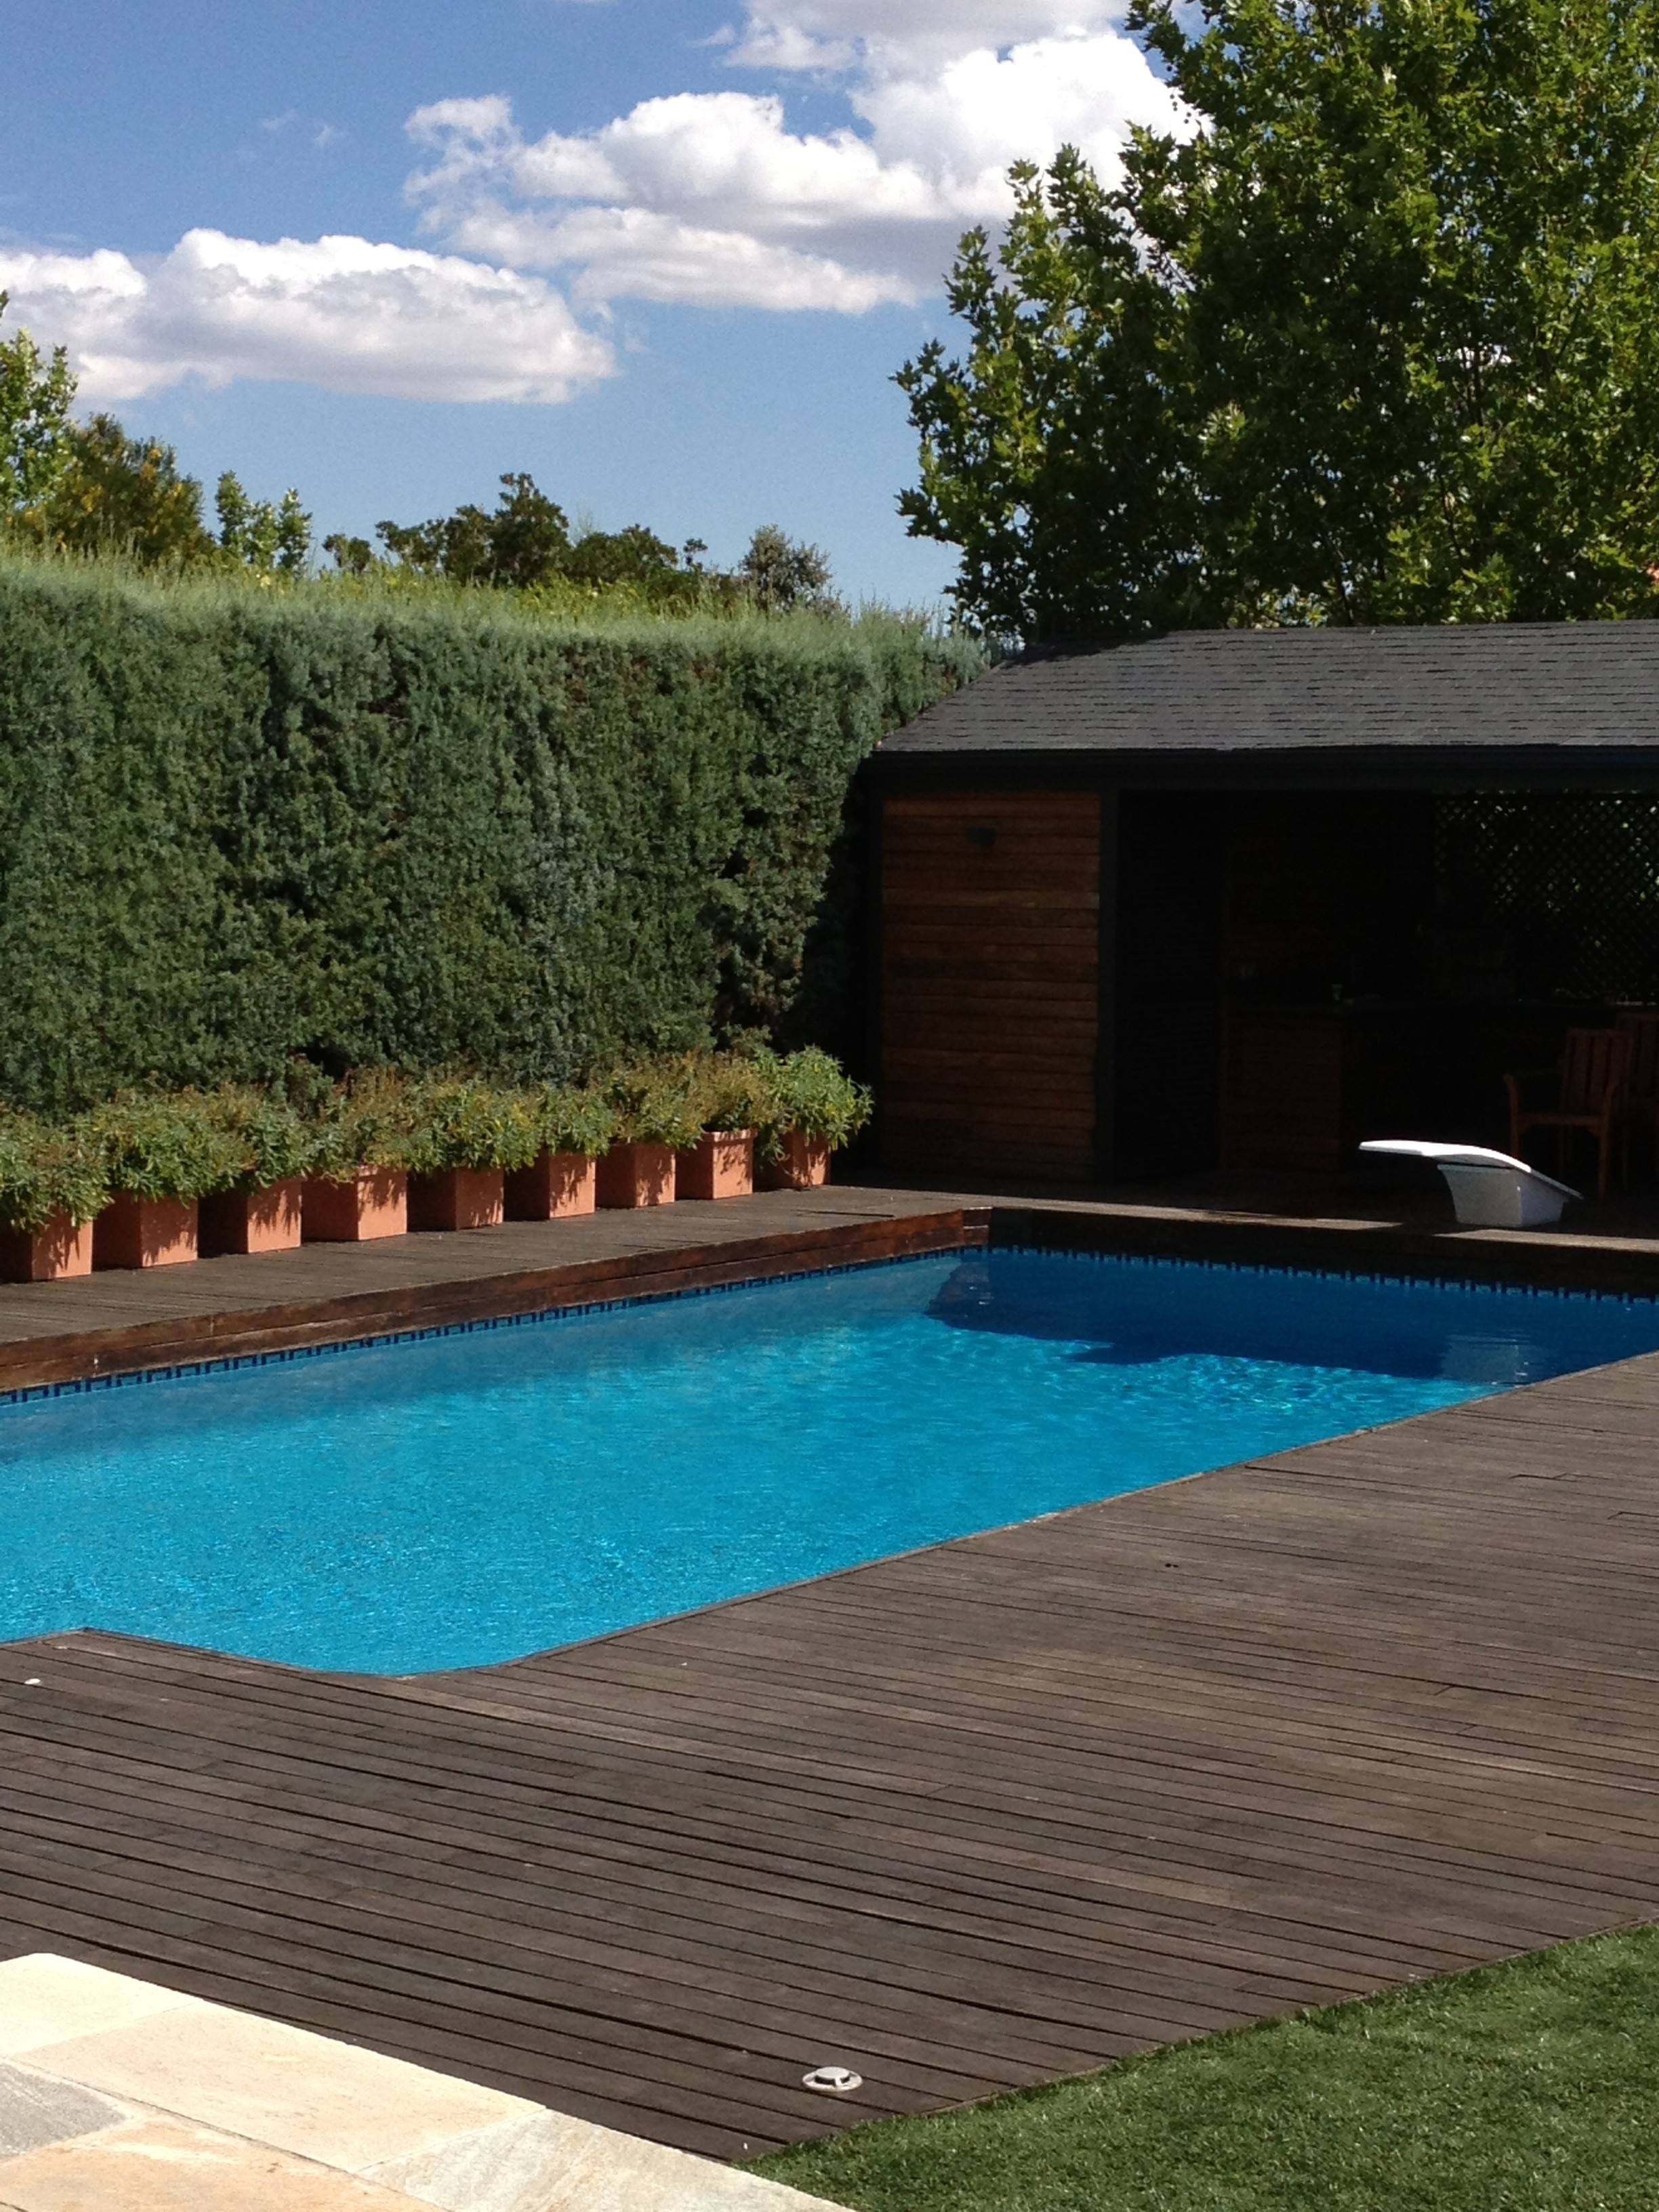 A pool at a house outside Madrid Spain